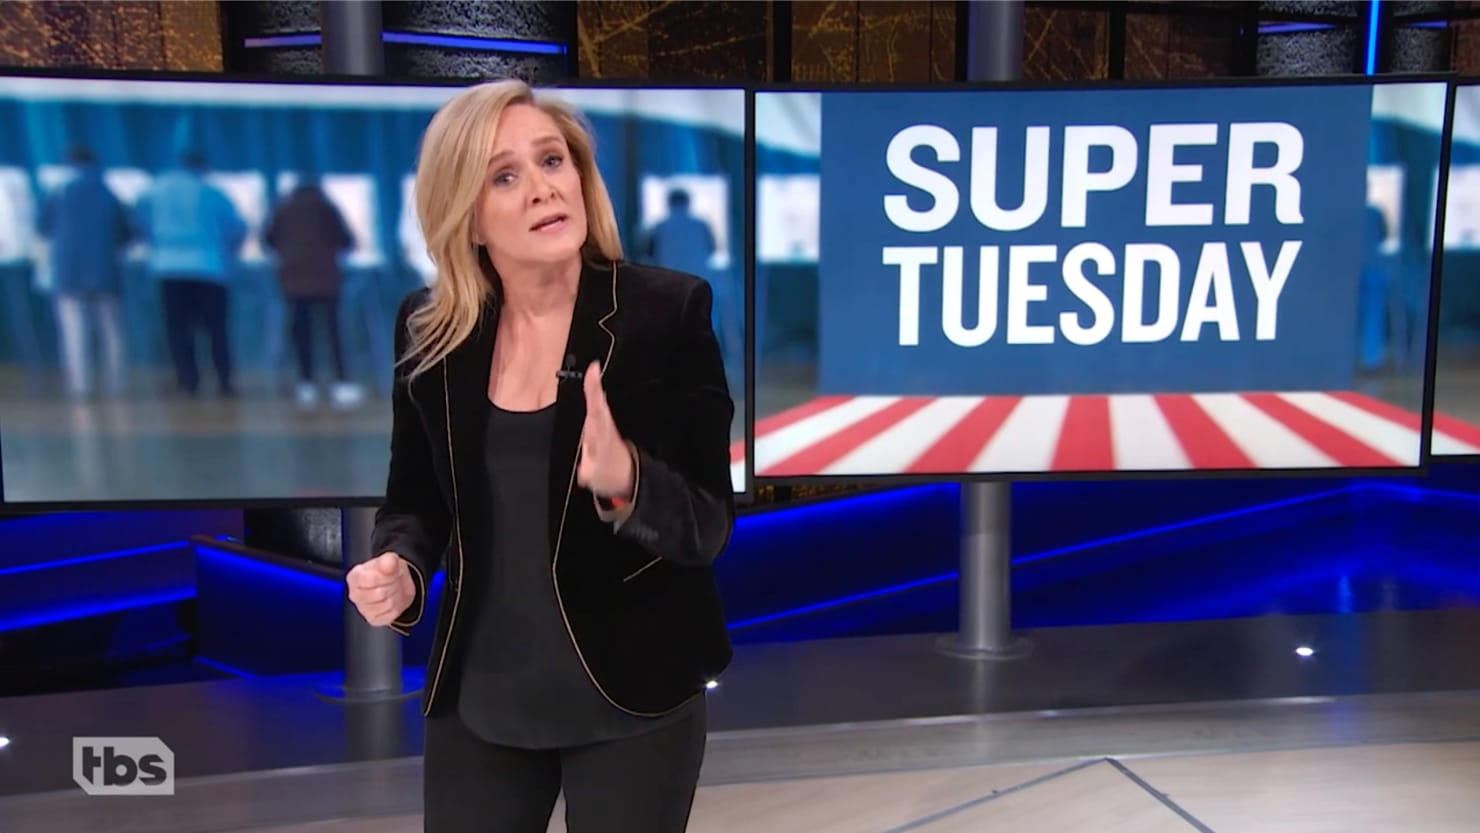 Samantha Bee Begs Bernie and Biden Supporters to Get Along After Super Tuesday